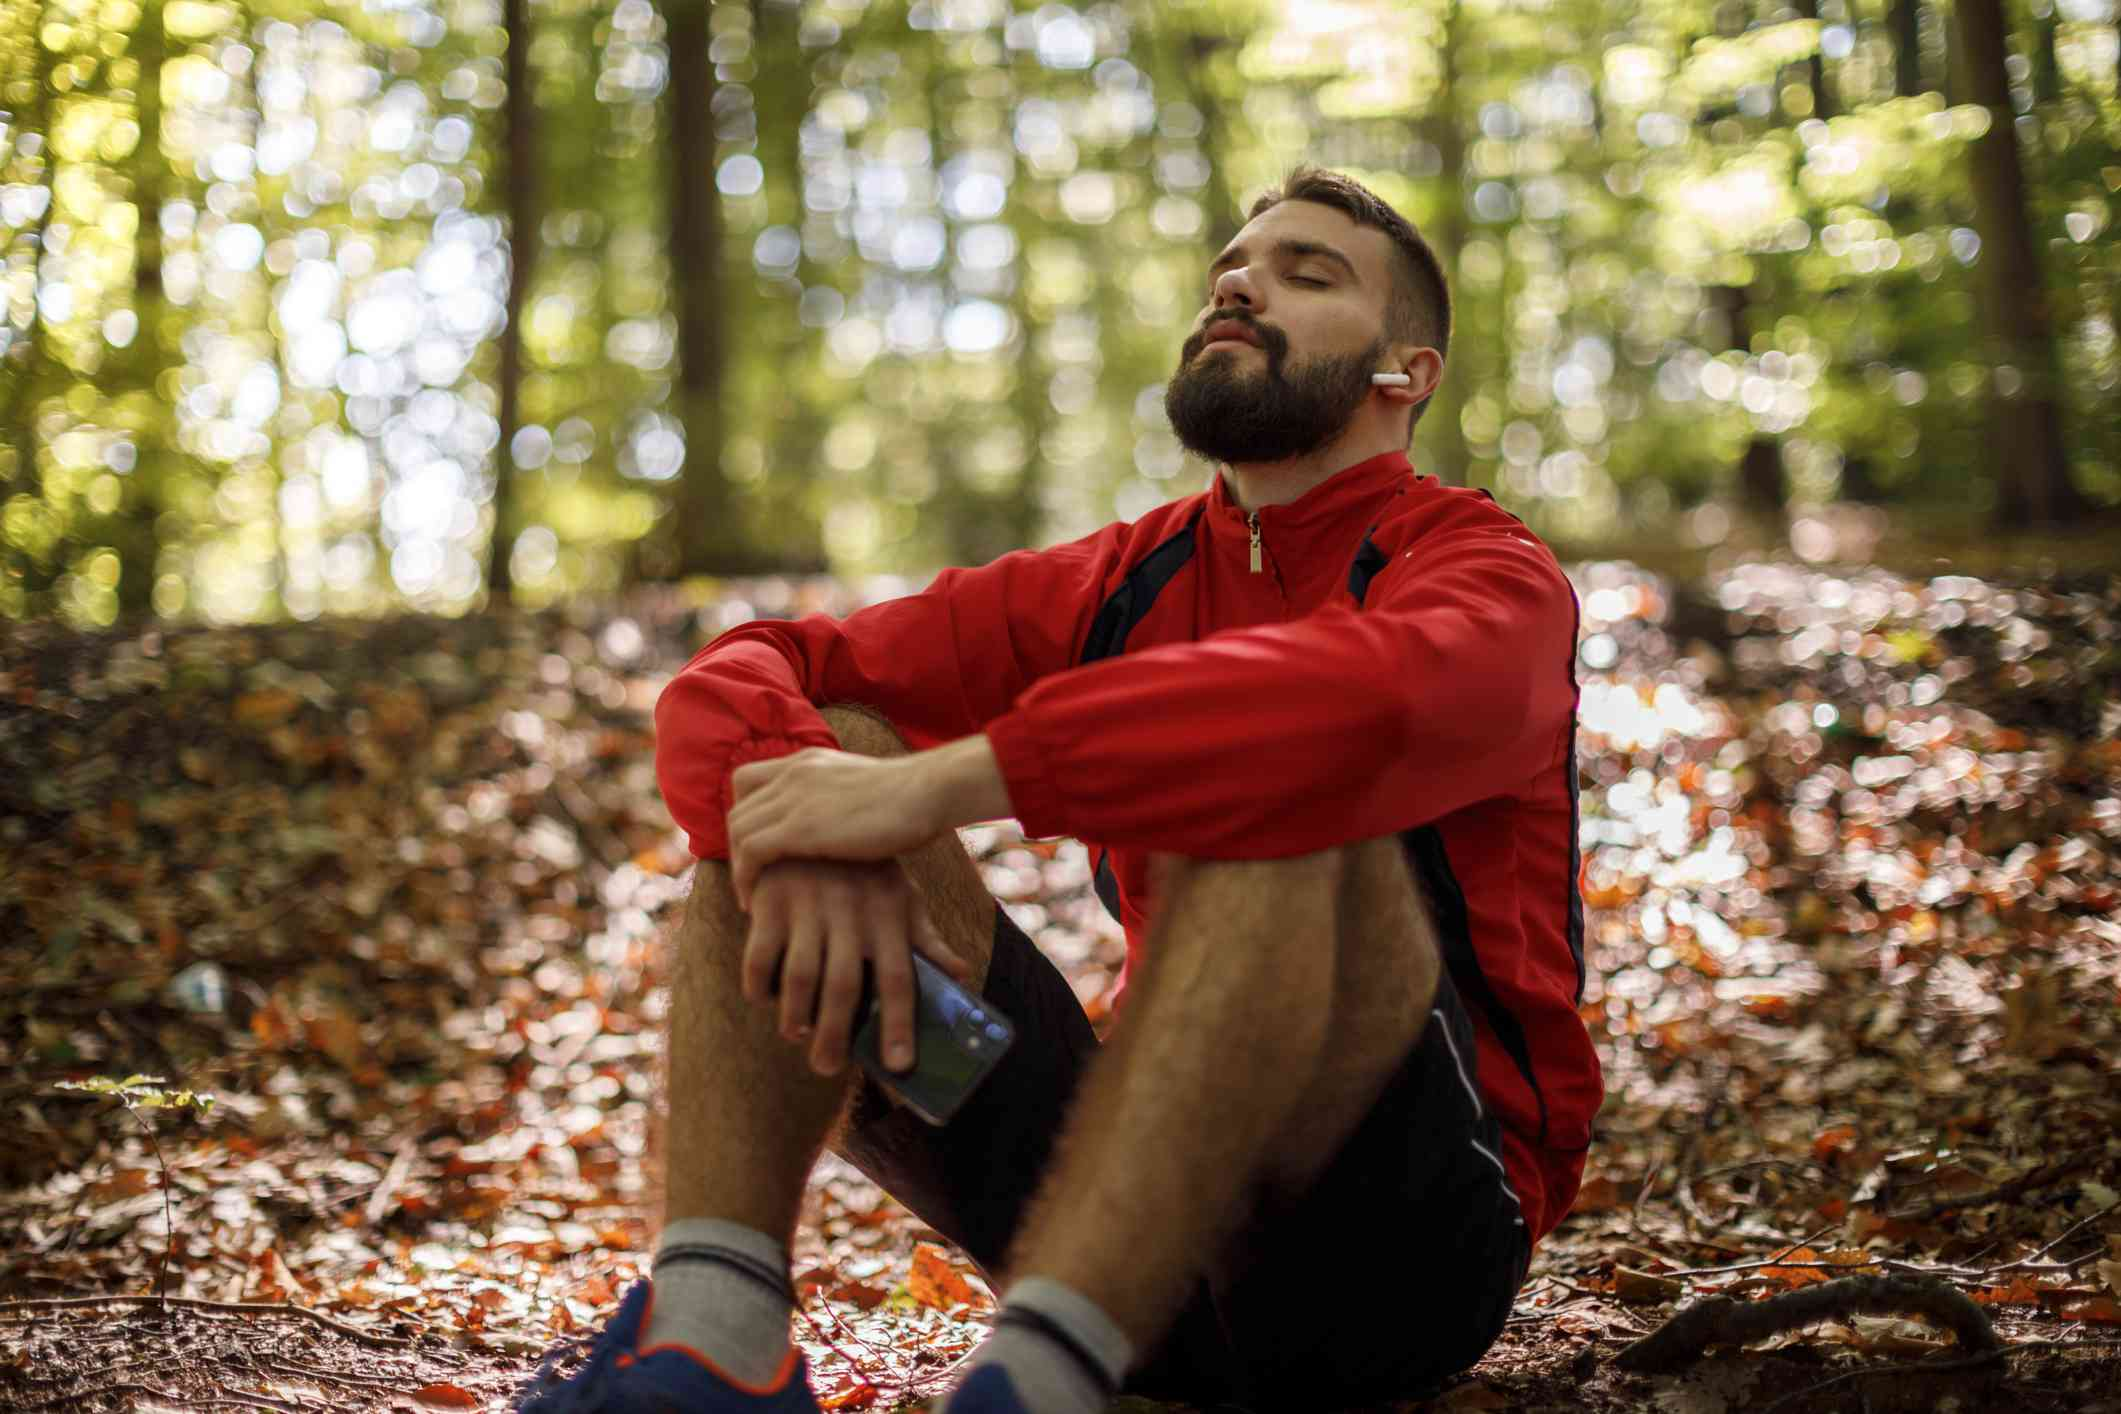 A white man with a beard sits in the forest and breathes the fresh air.